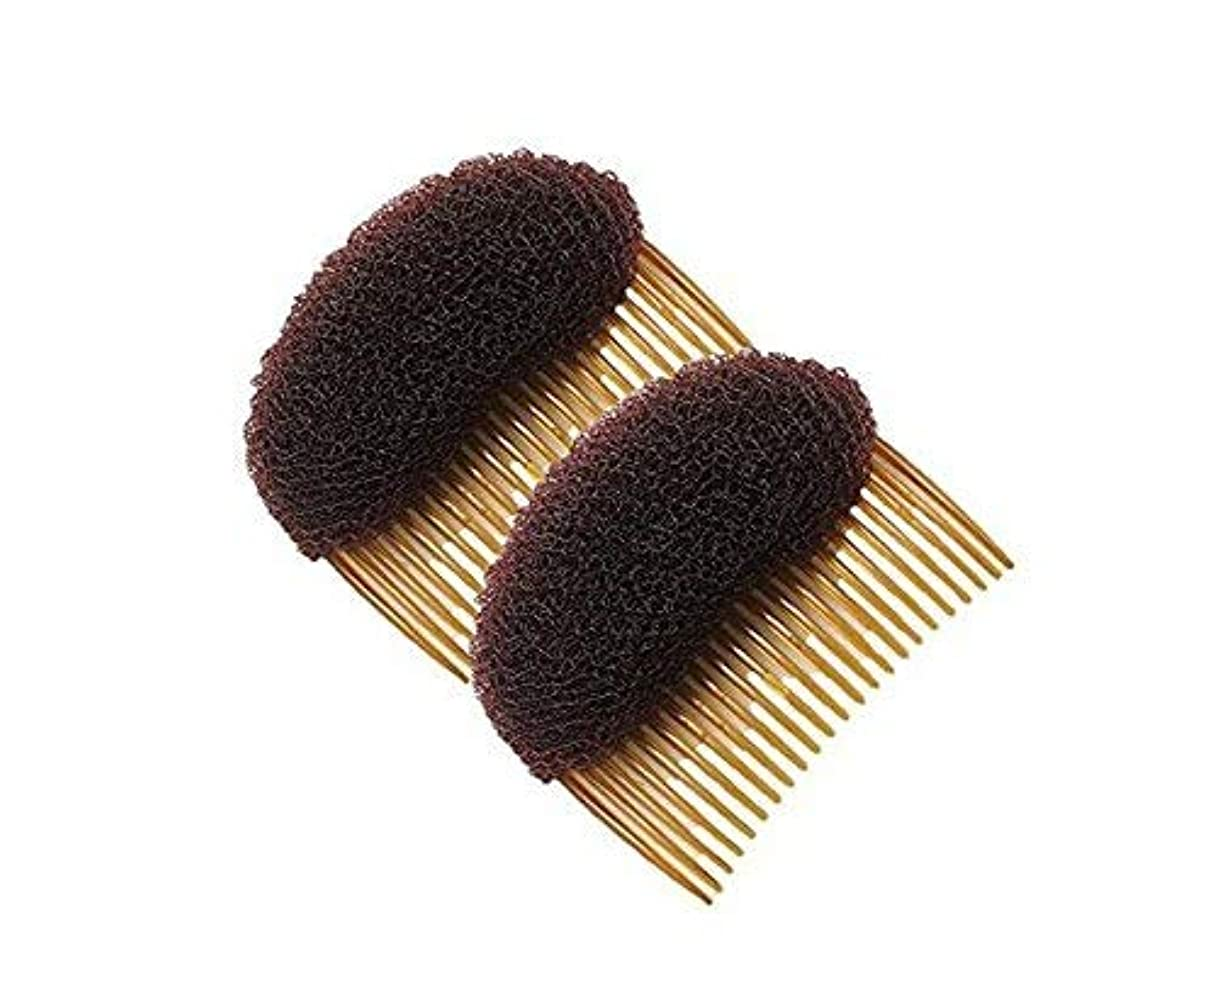 洞察力皿旧正月2PCS 23 Teeth Hair Fringe Volume Bump Up Inserts Tools-Hair Pin Hair Styling Clip Hair Charming Insert Do Beehive...